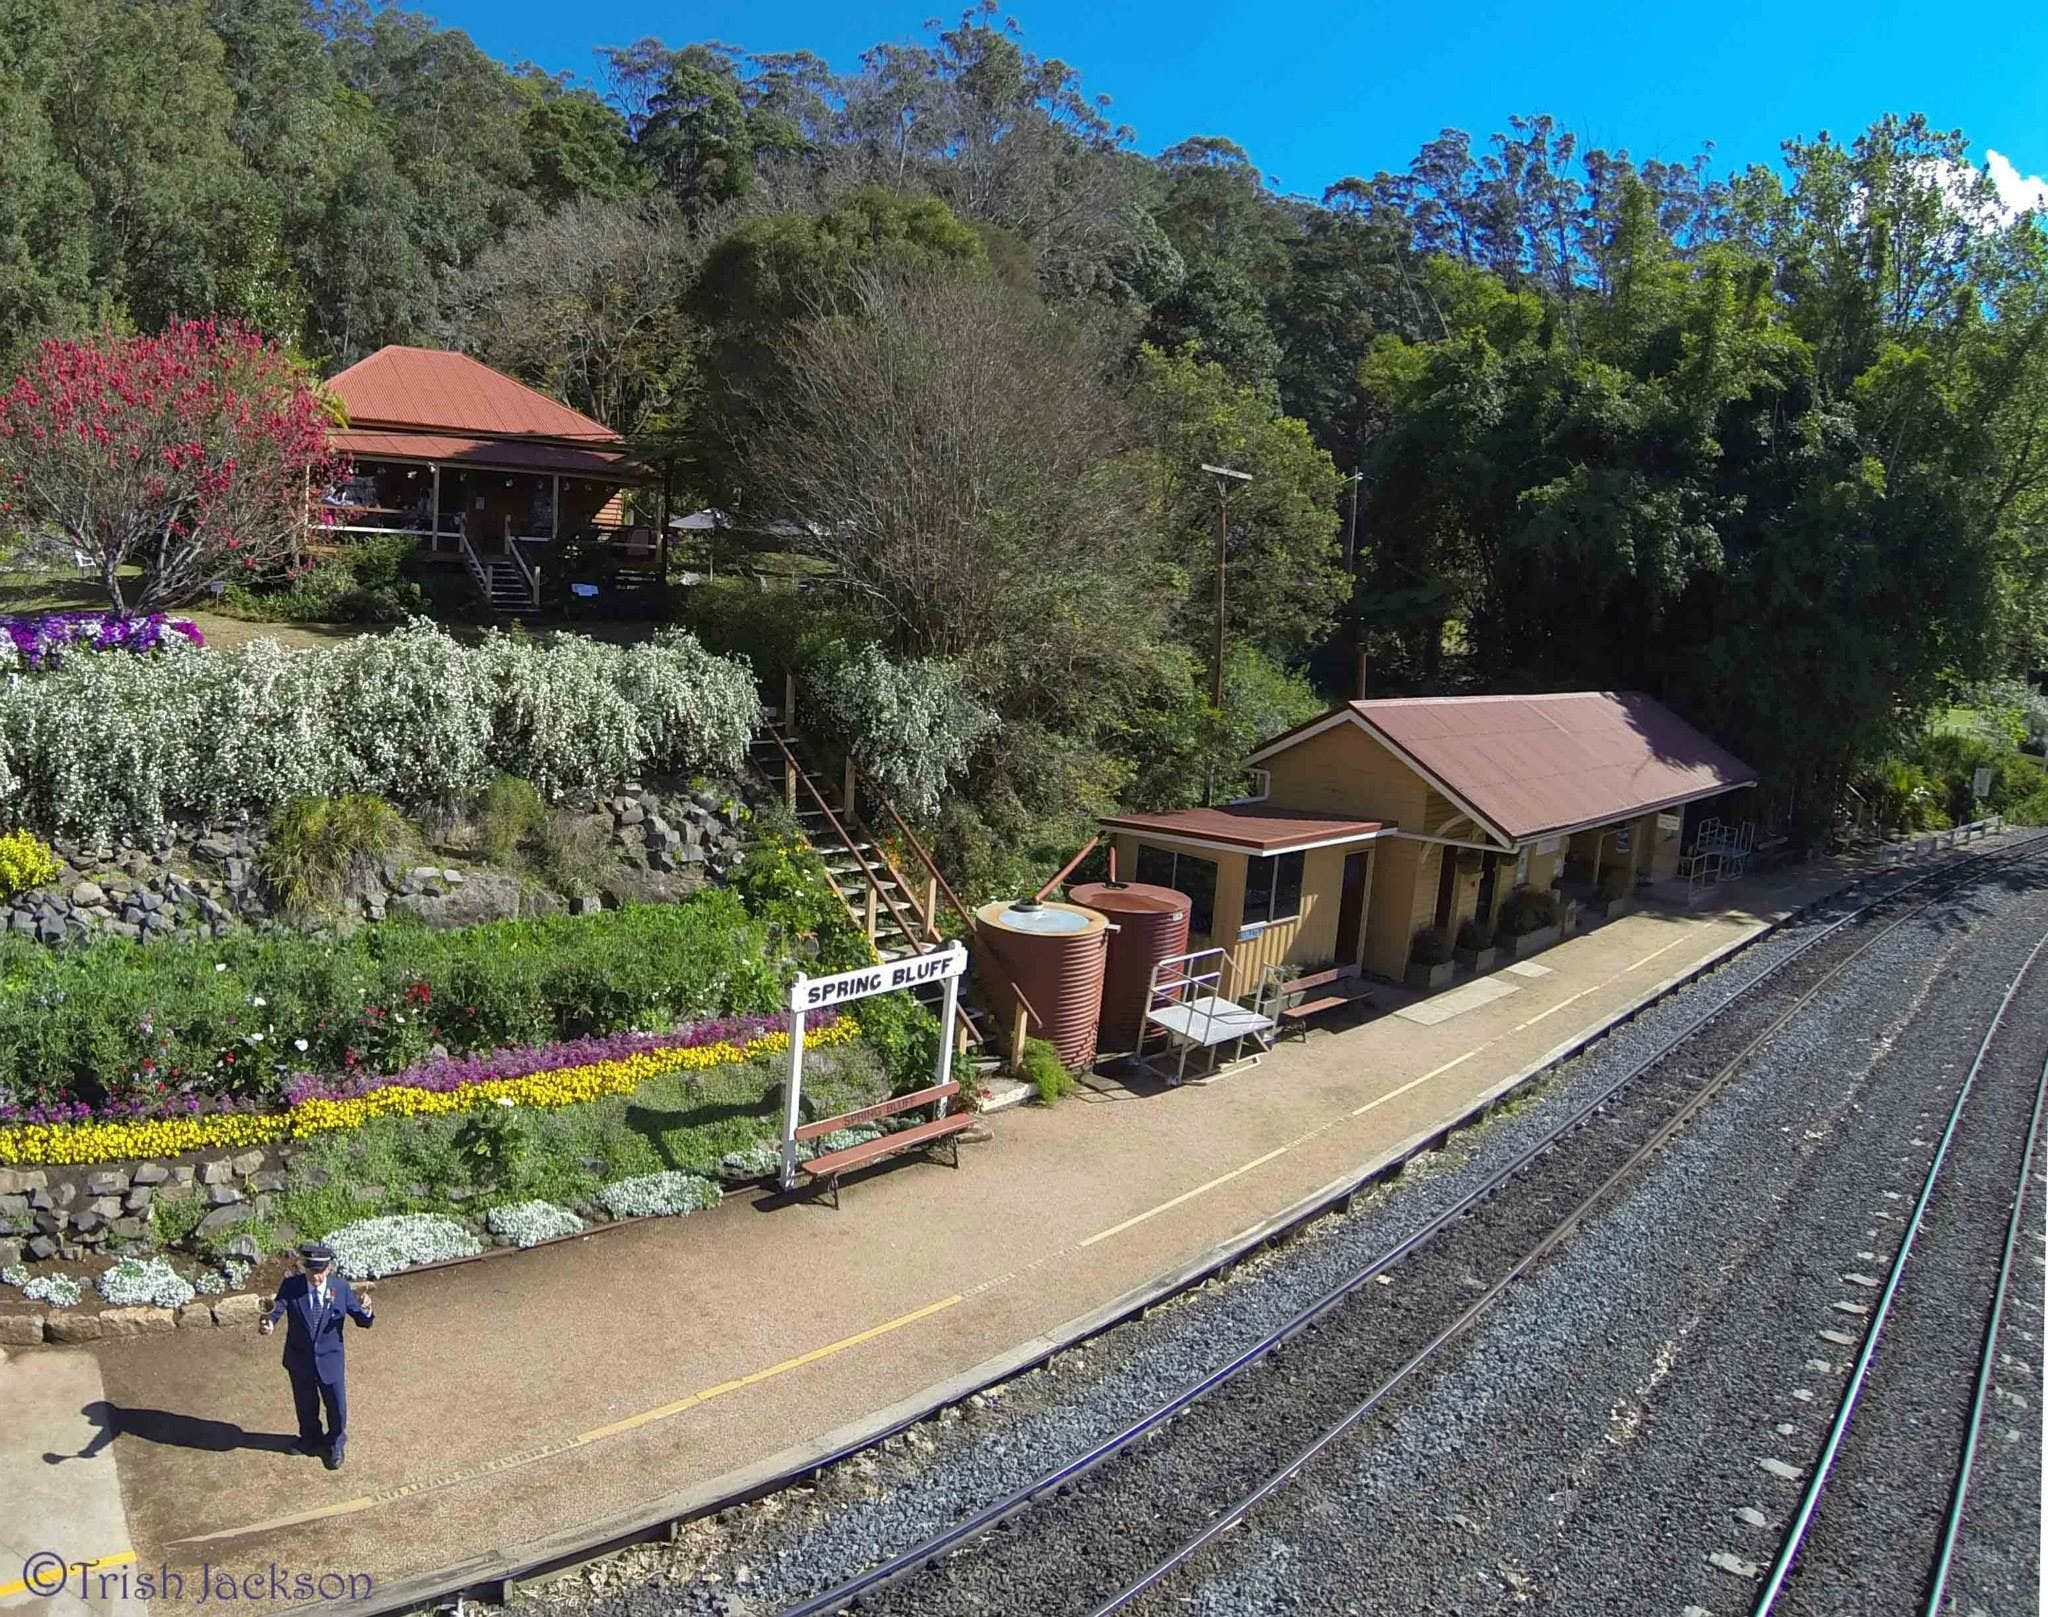 Spring Bluff Railway Station - Accommodation Search